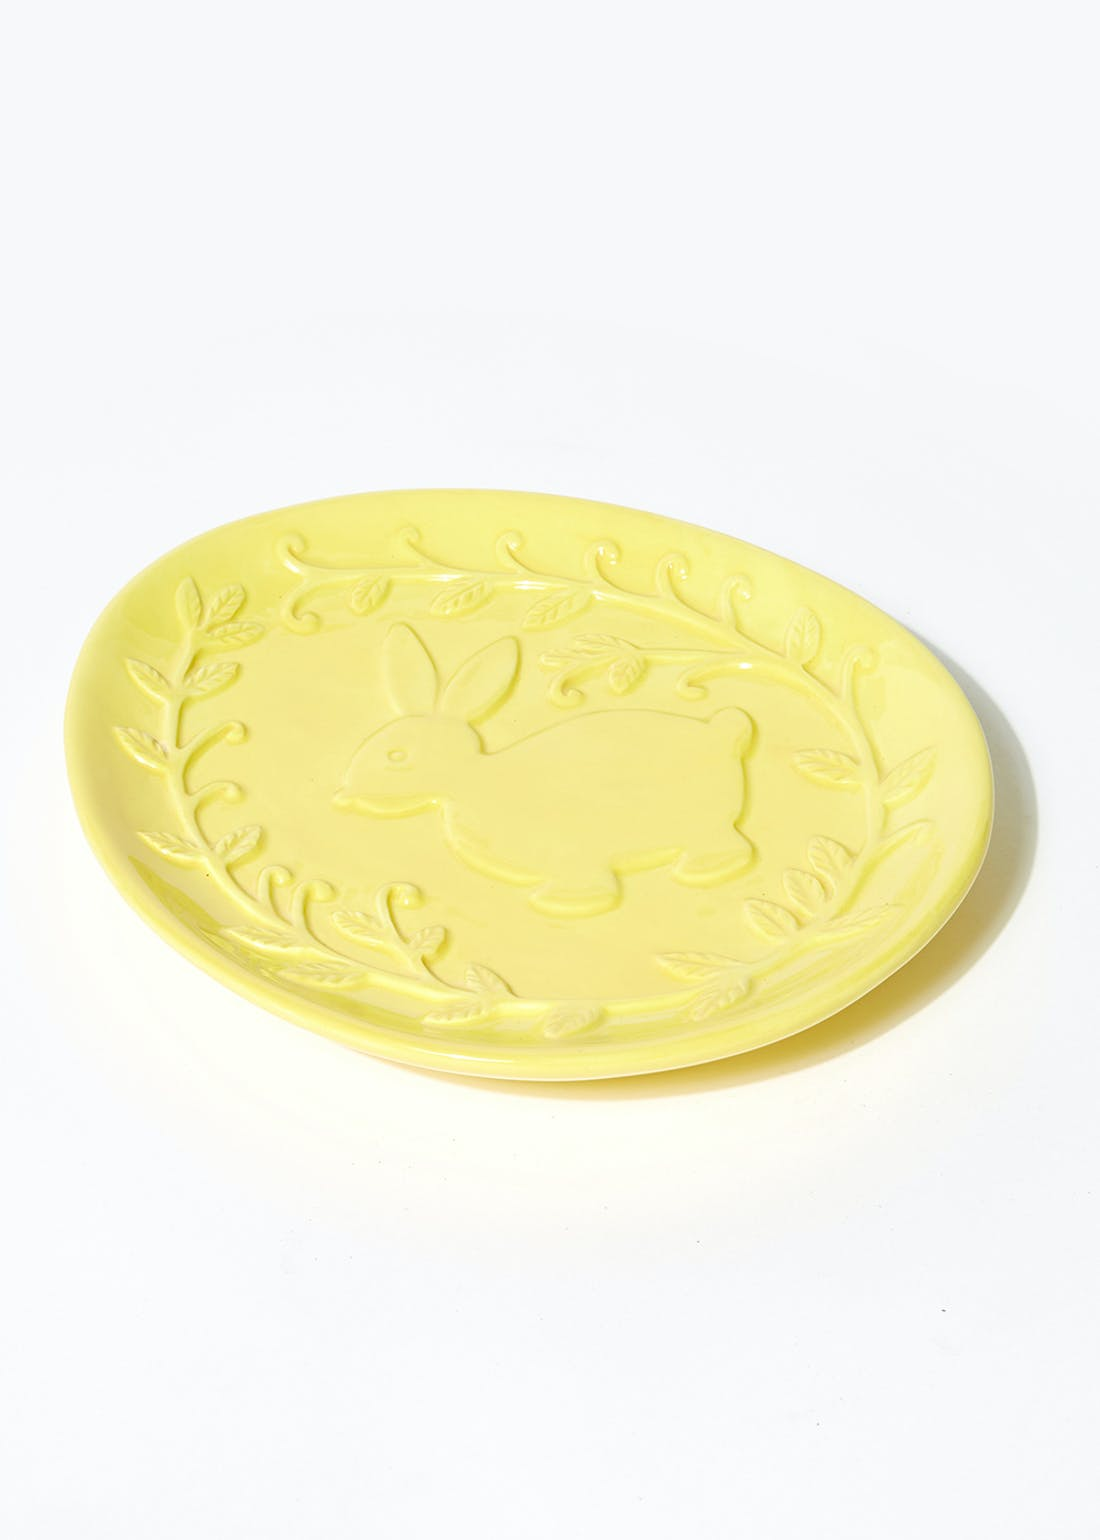 Easter Bunny Plate (19.5cm)